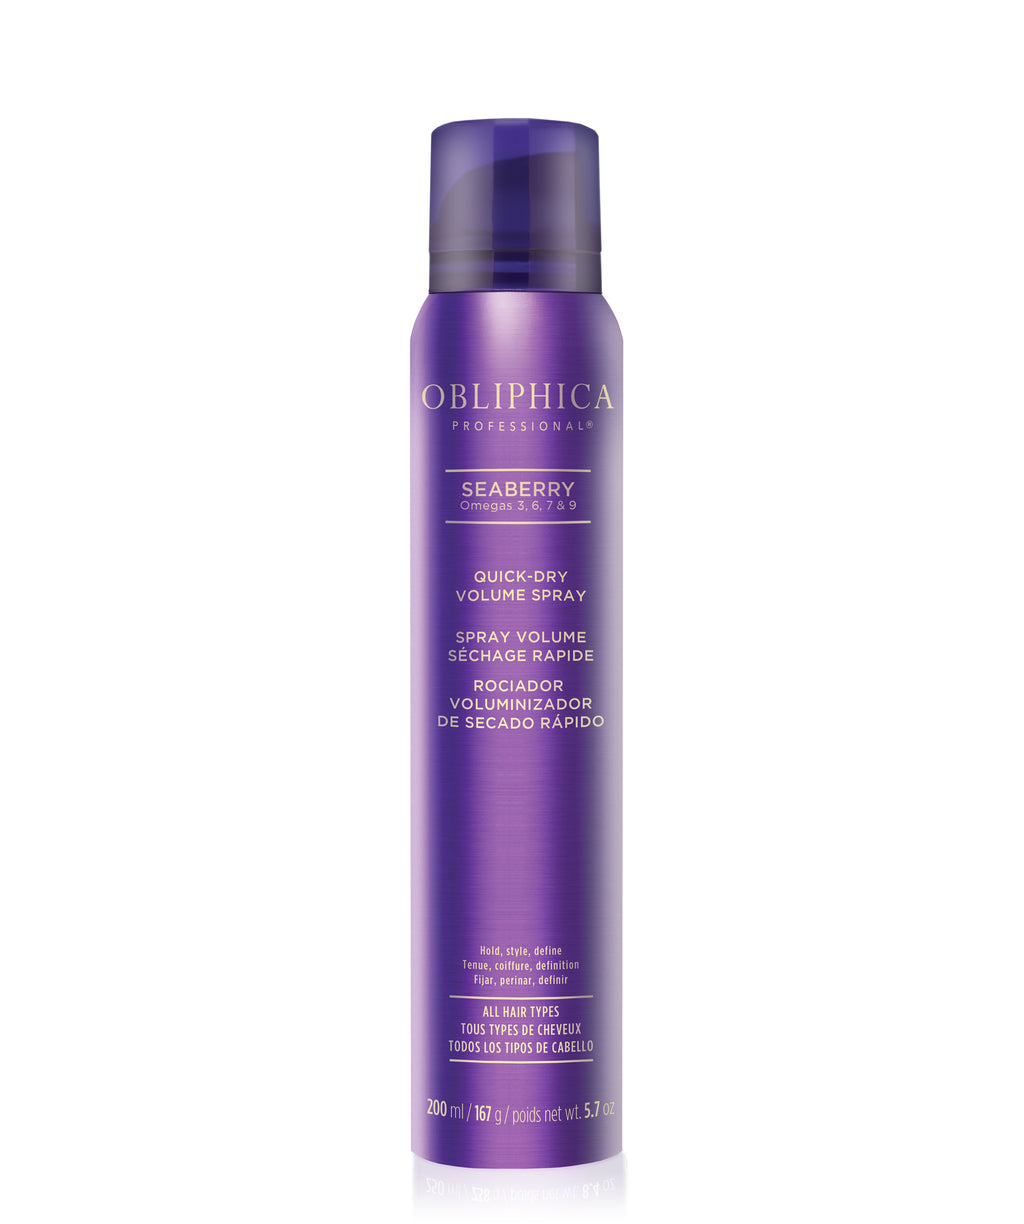 Seaberry Quick-Dry Volume Spray